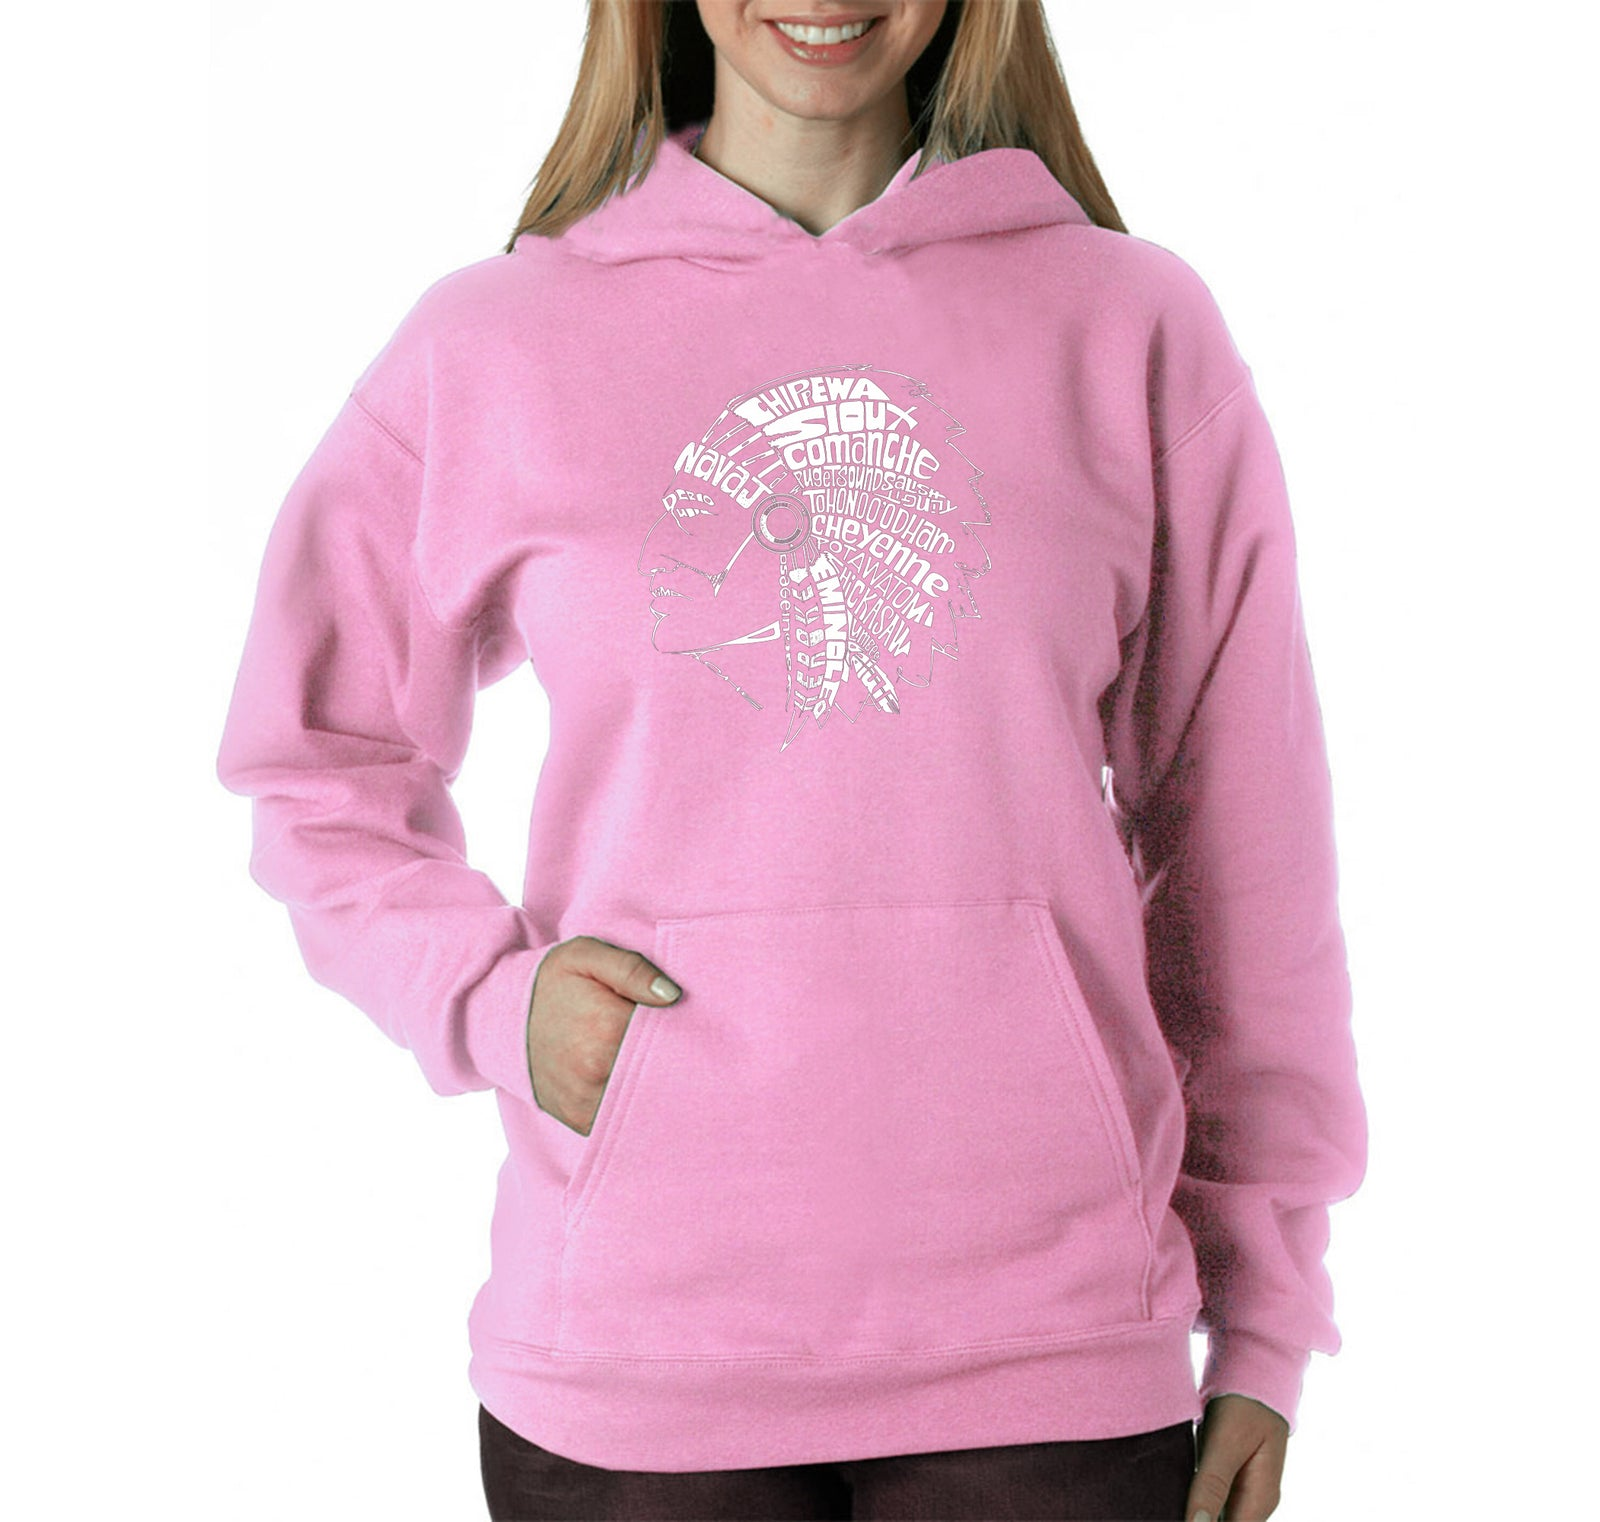 Women's Hooded Sweatshirt -POPULAR NATIVE AMERICAN INDIAN TRIBES